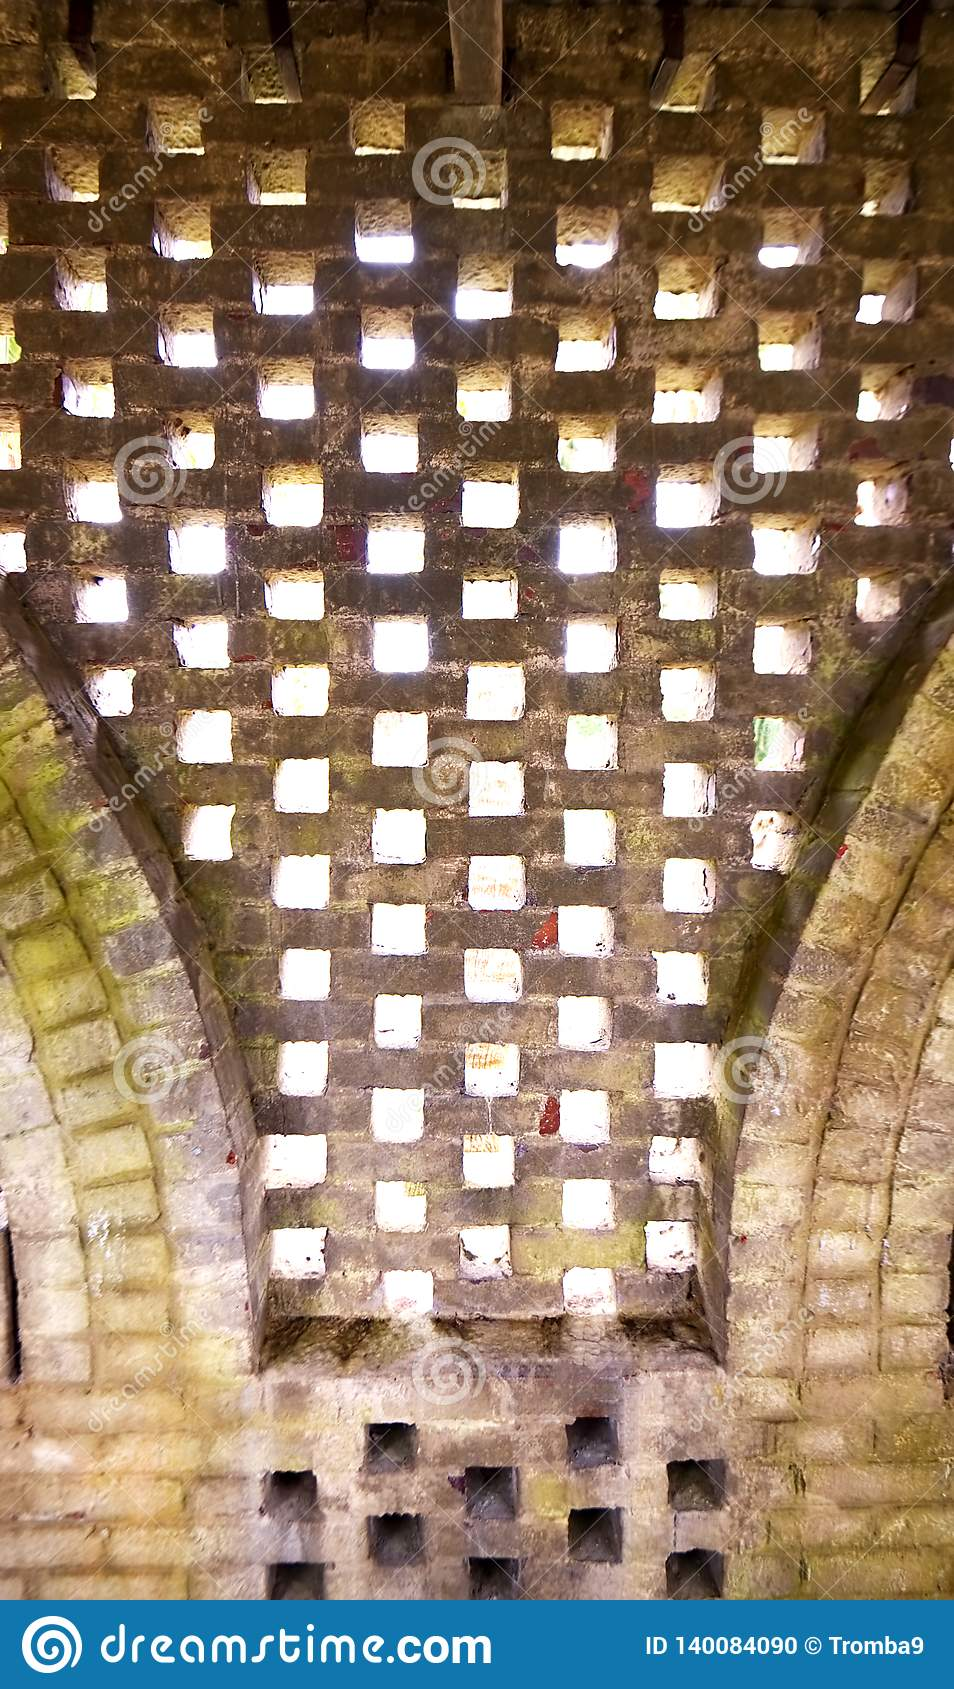 An abstract pattern created by bricks in an old wall.